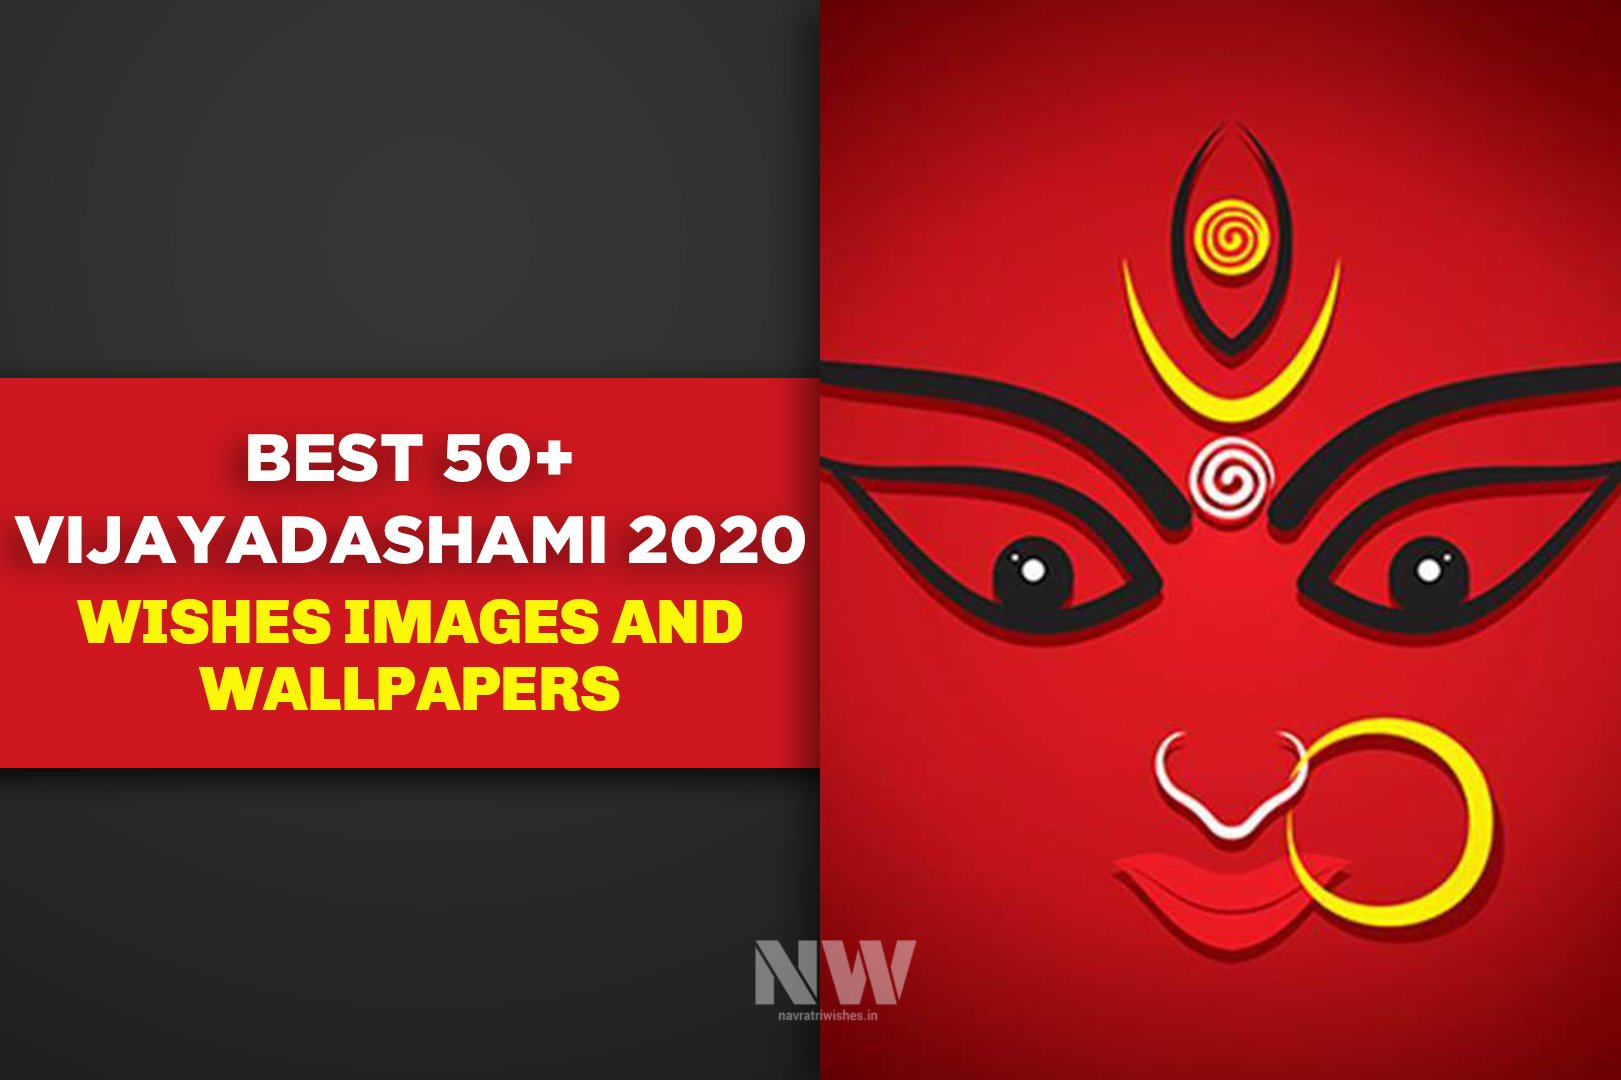 vijayadashami-2020-wishes-images-and-wallpapers